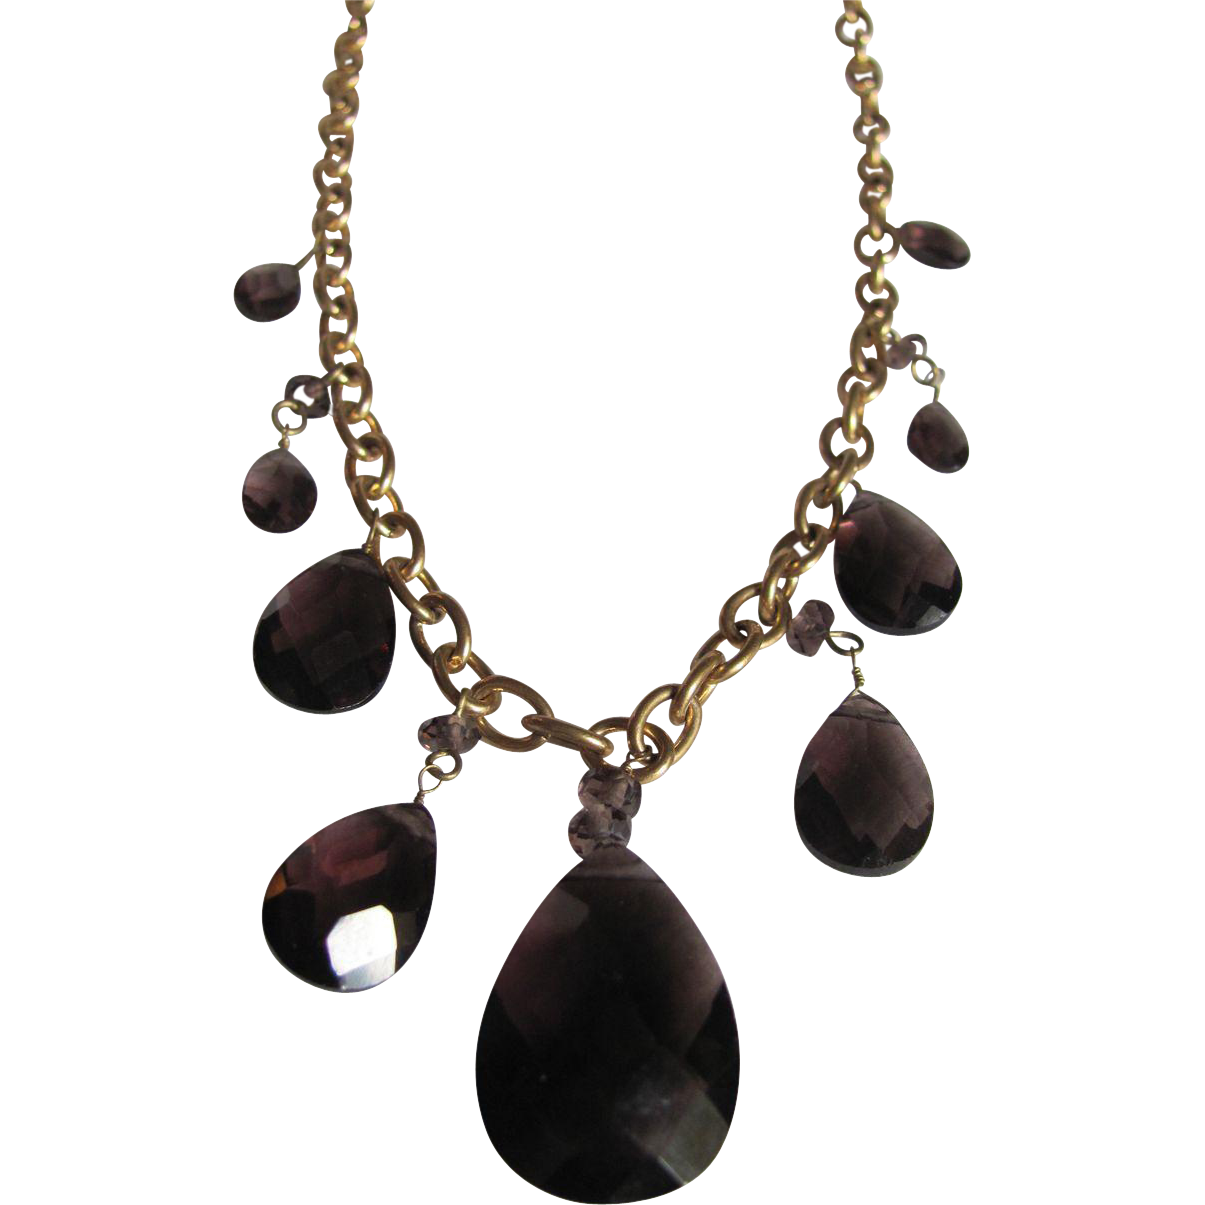 Romanesque Revival Style Signed Ralph Lauren Teardrop TOPAZ Necklace Certified Appraisal $1475